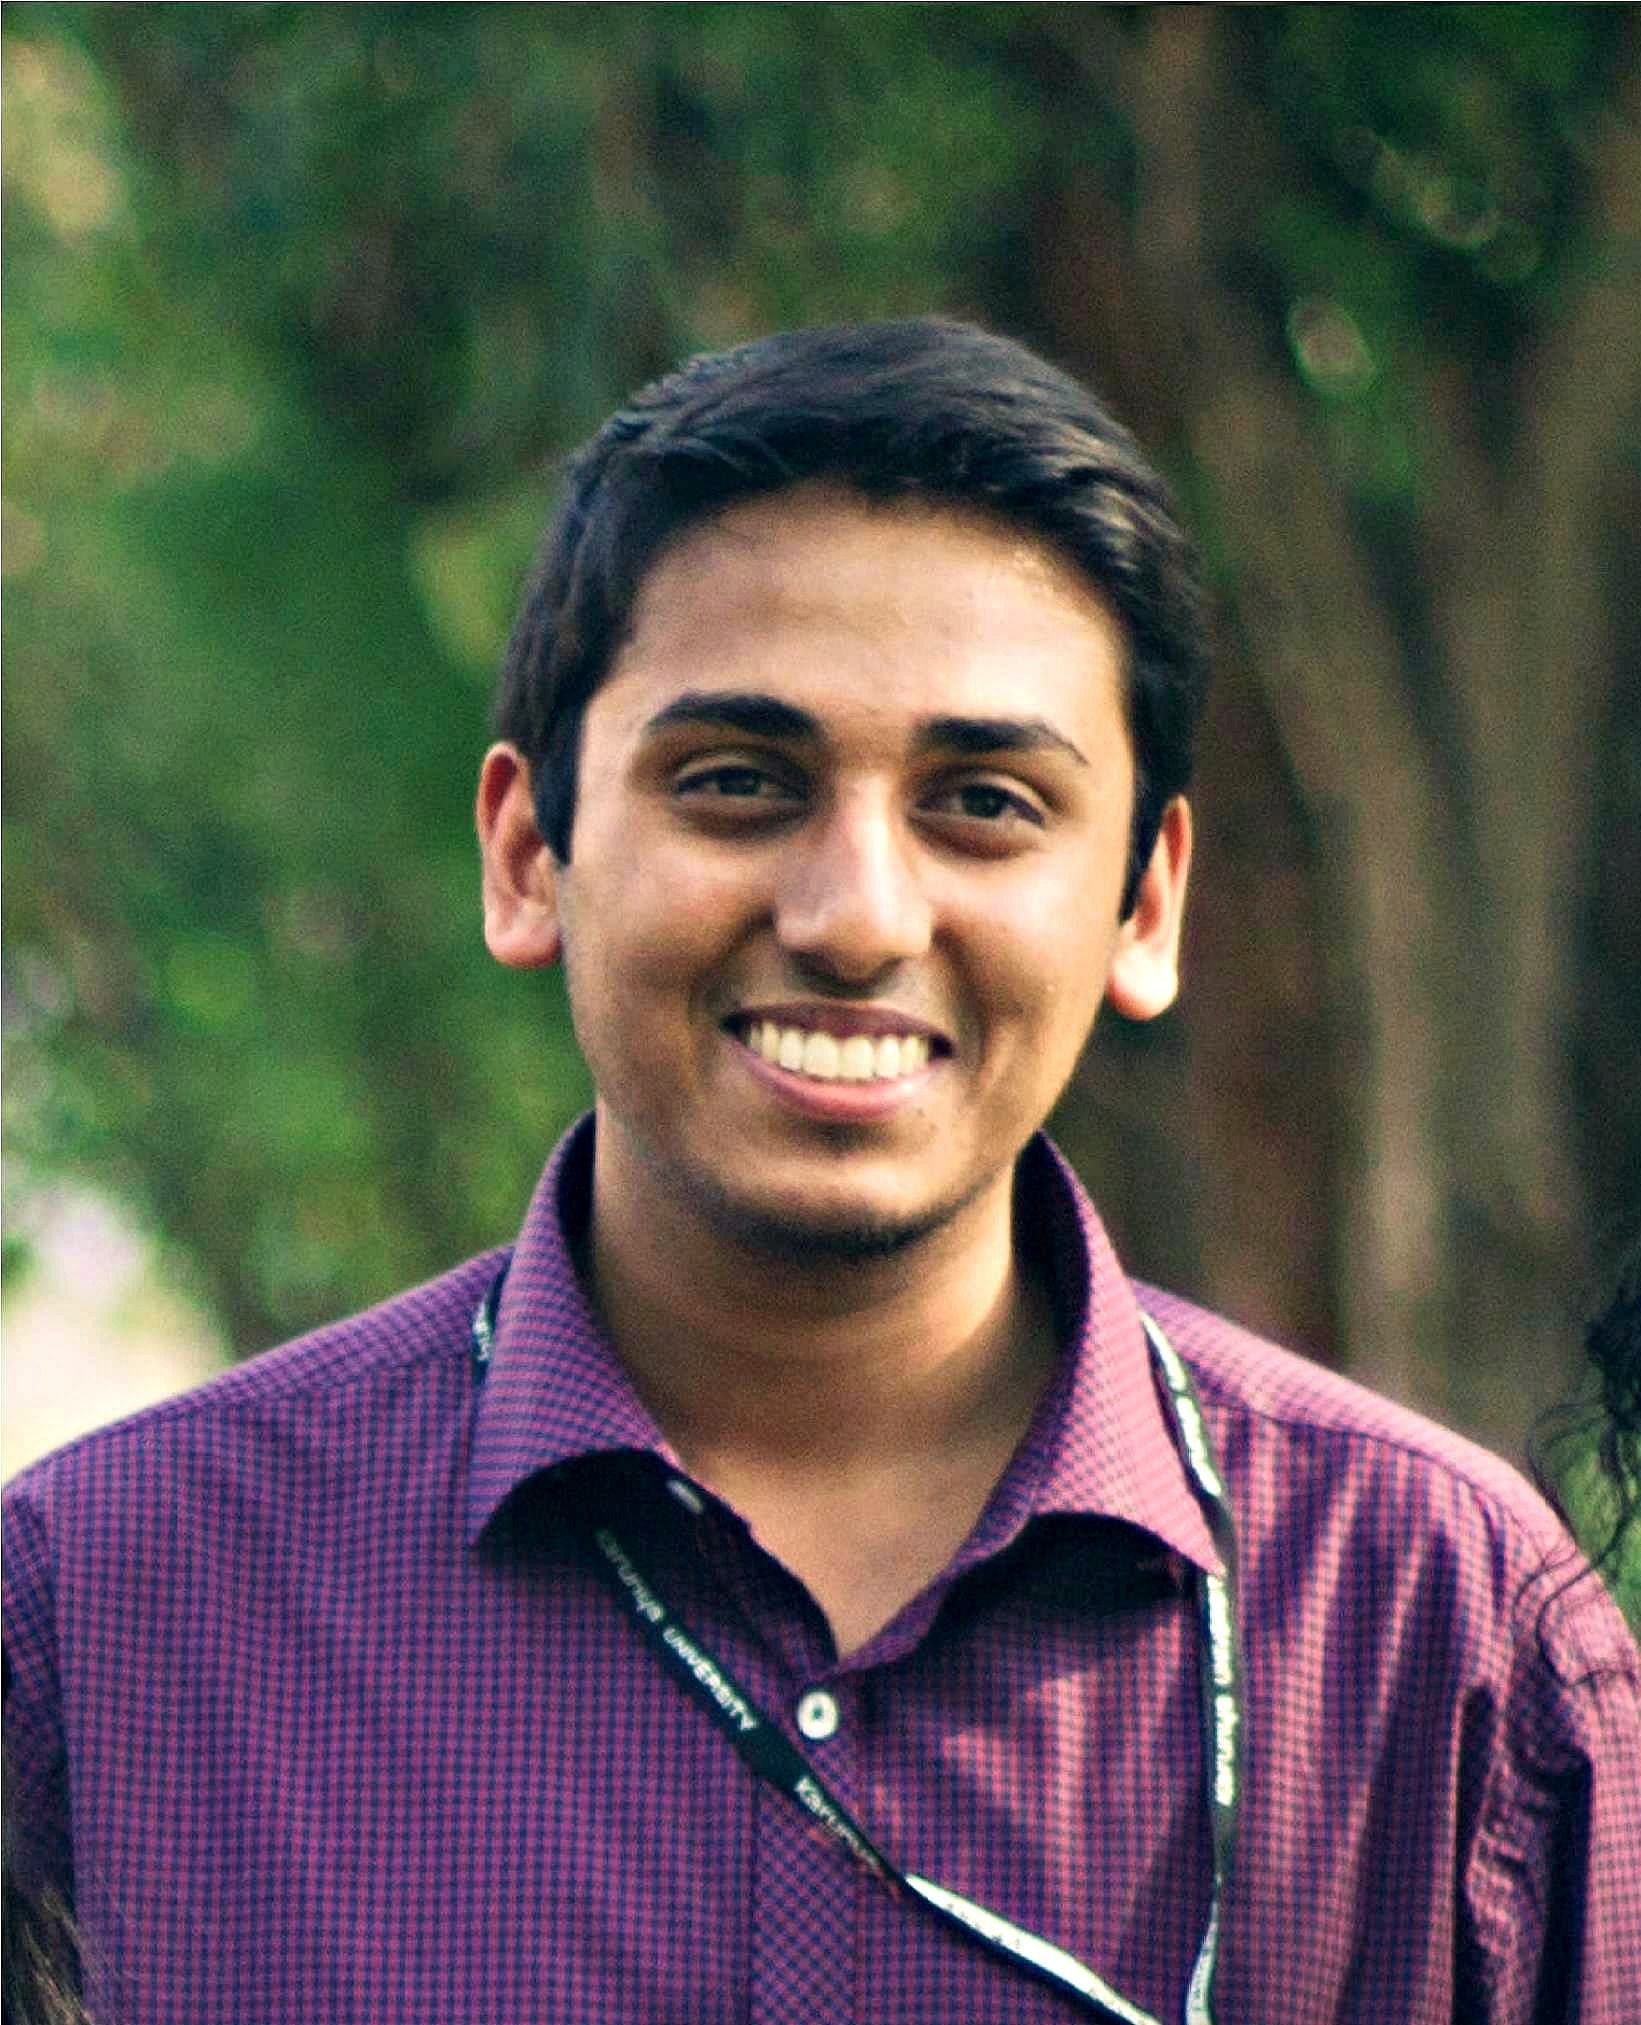 Harshil Mittal, Founder of Let's Feed Bengaluru